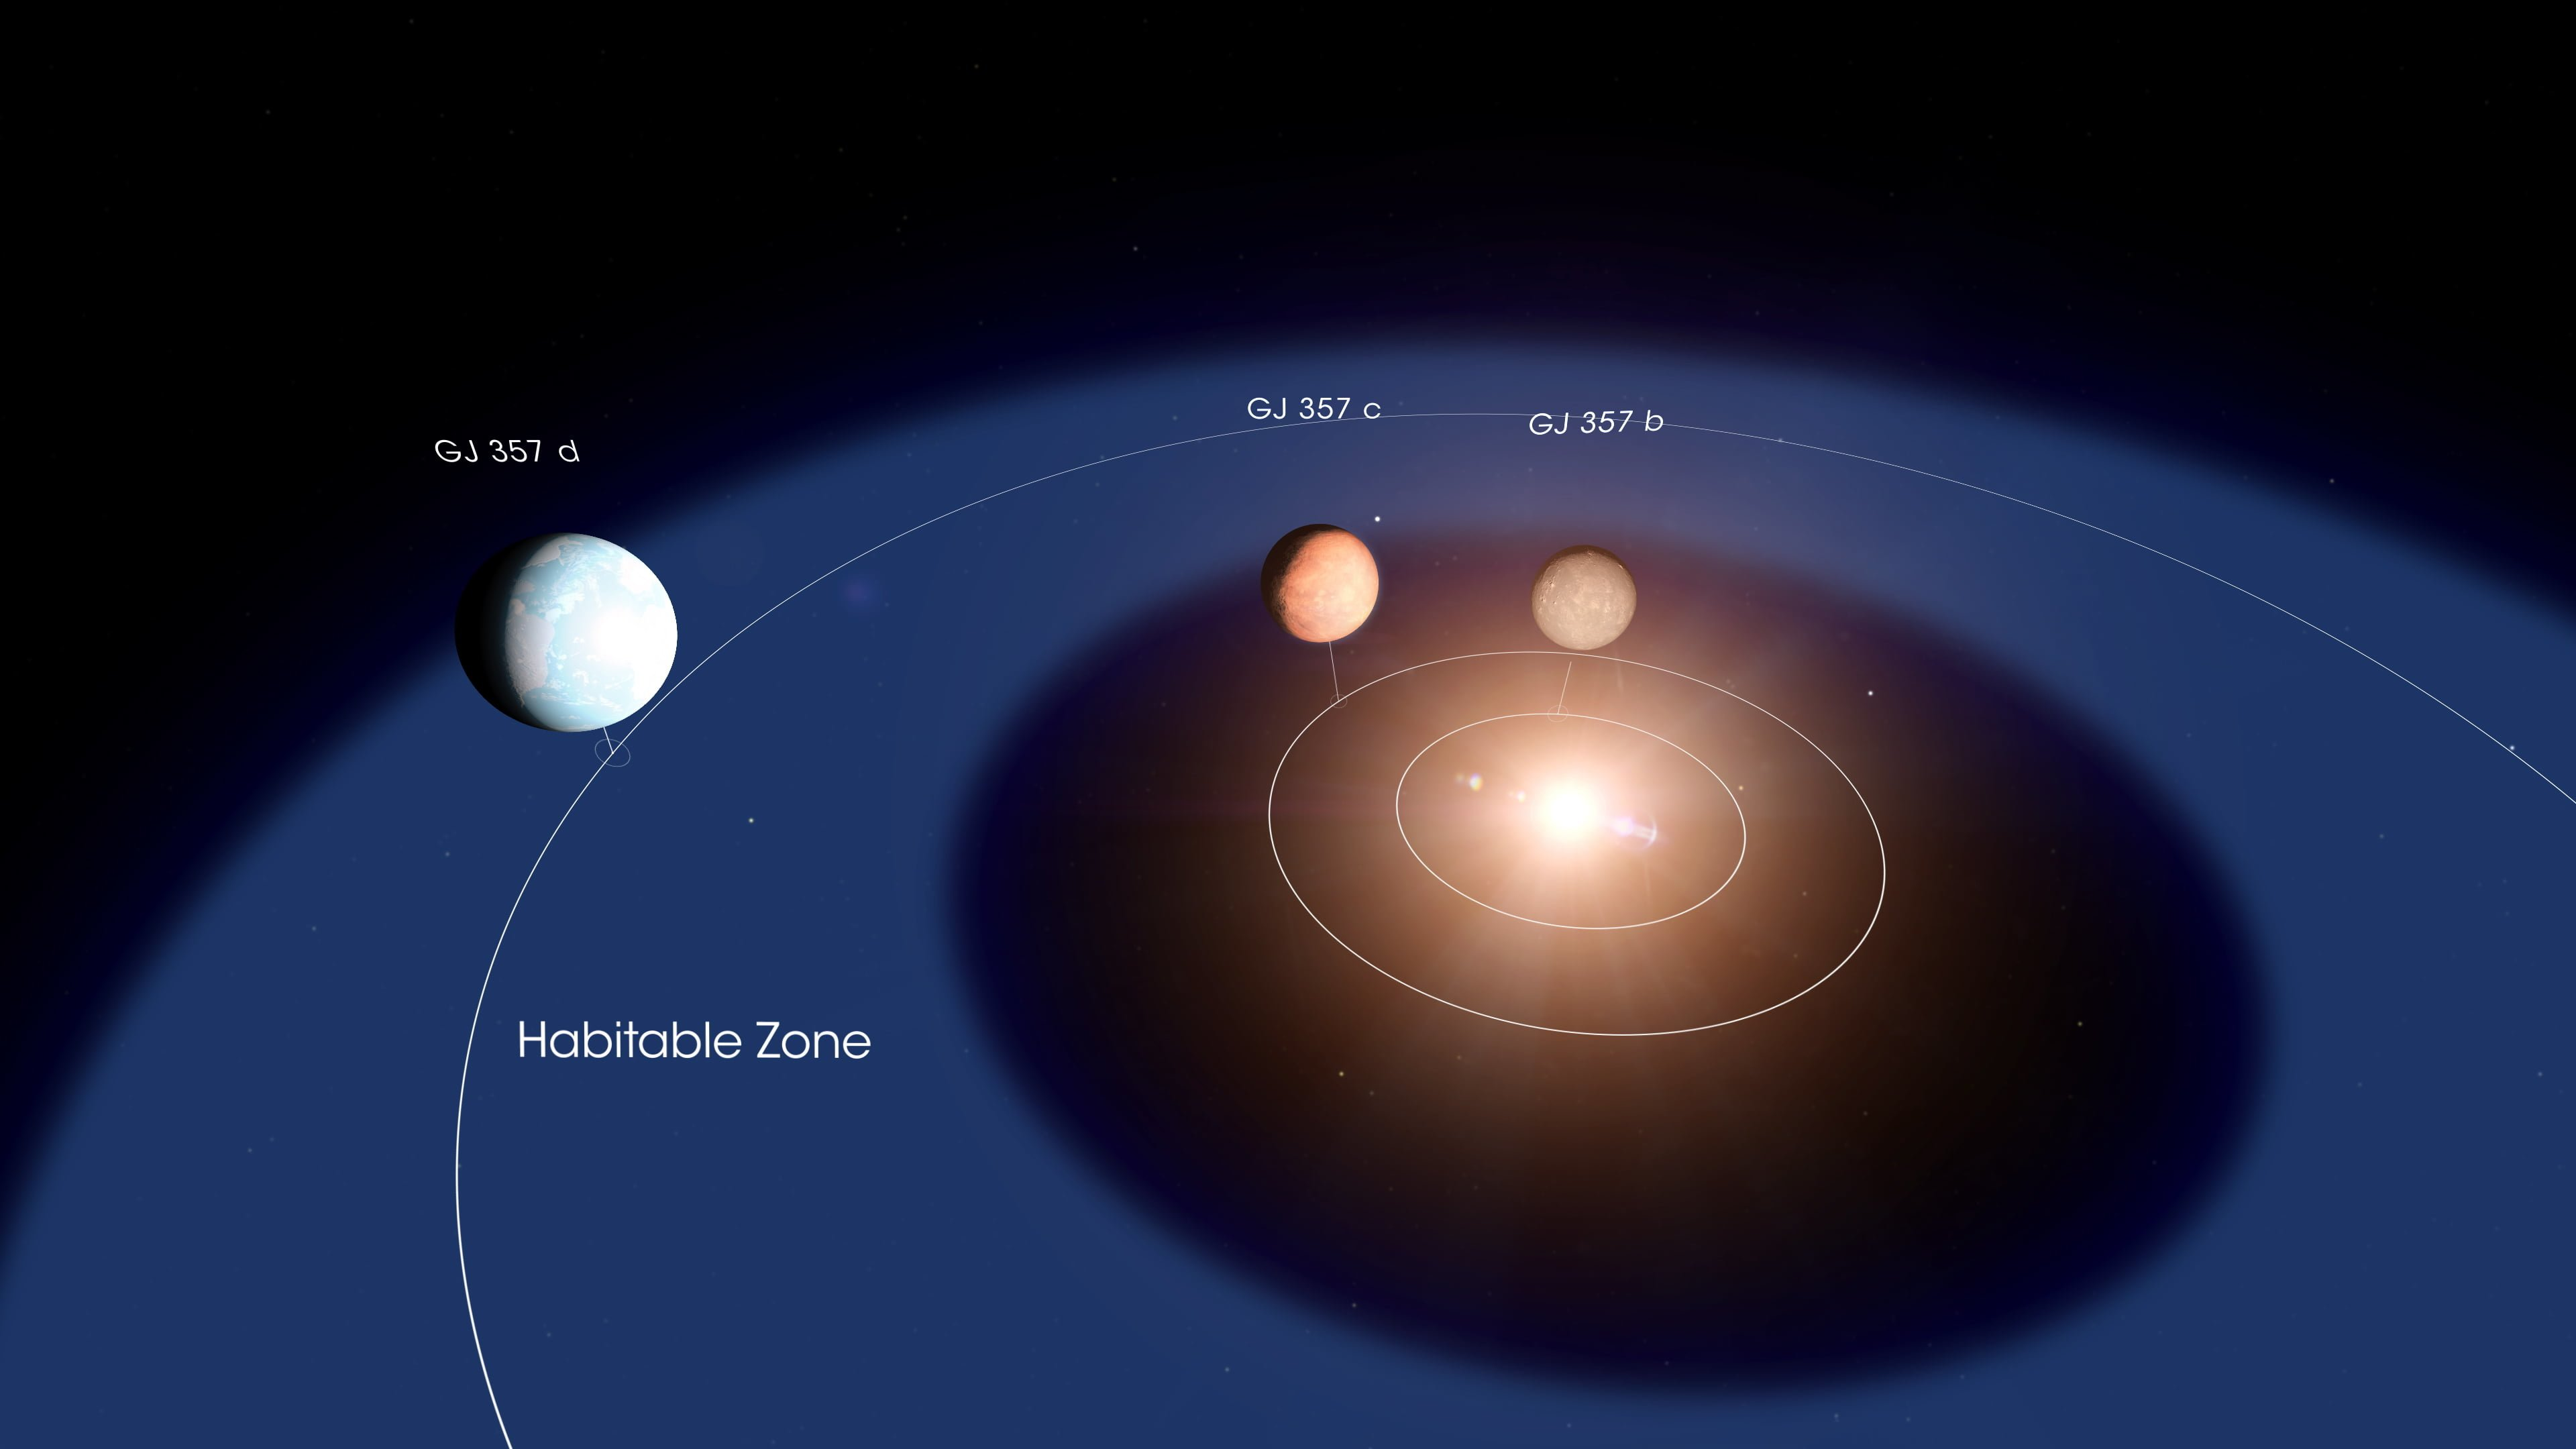 NASA satellite locates possibly habitable super-Earth 31 light years away